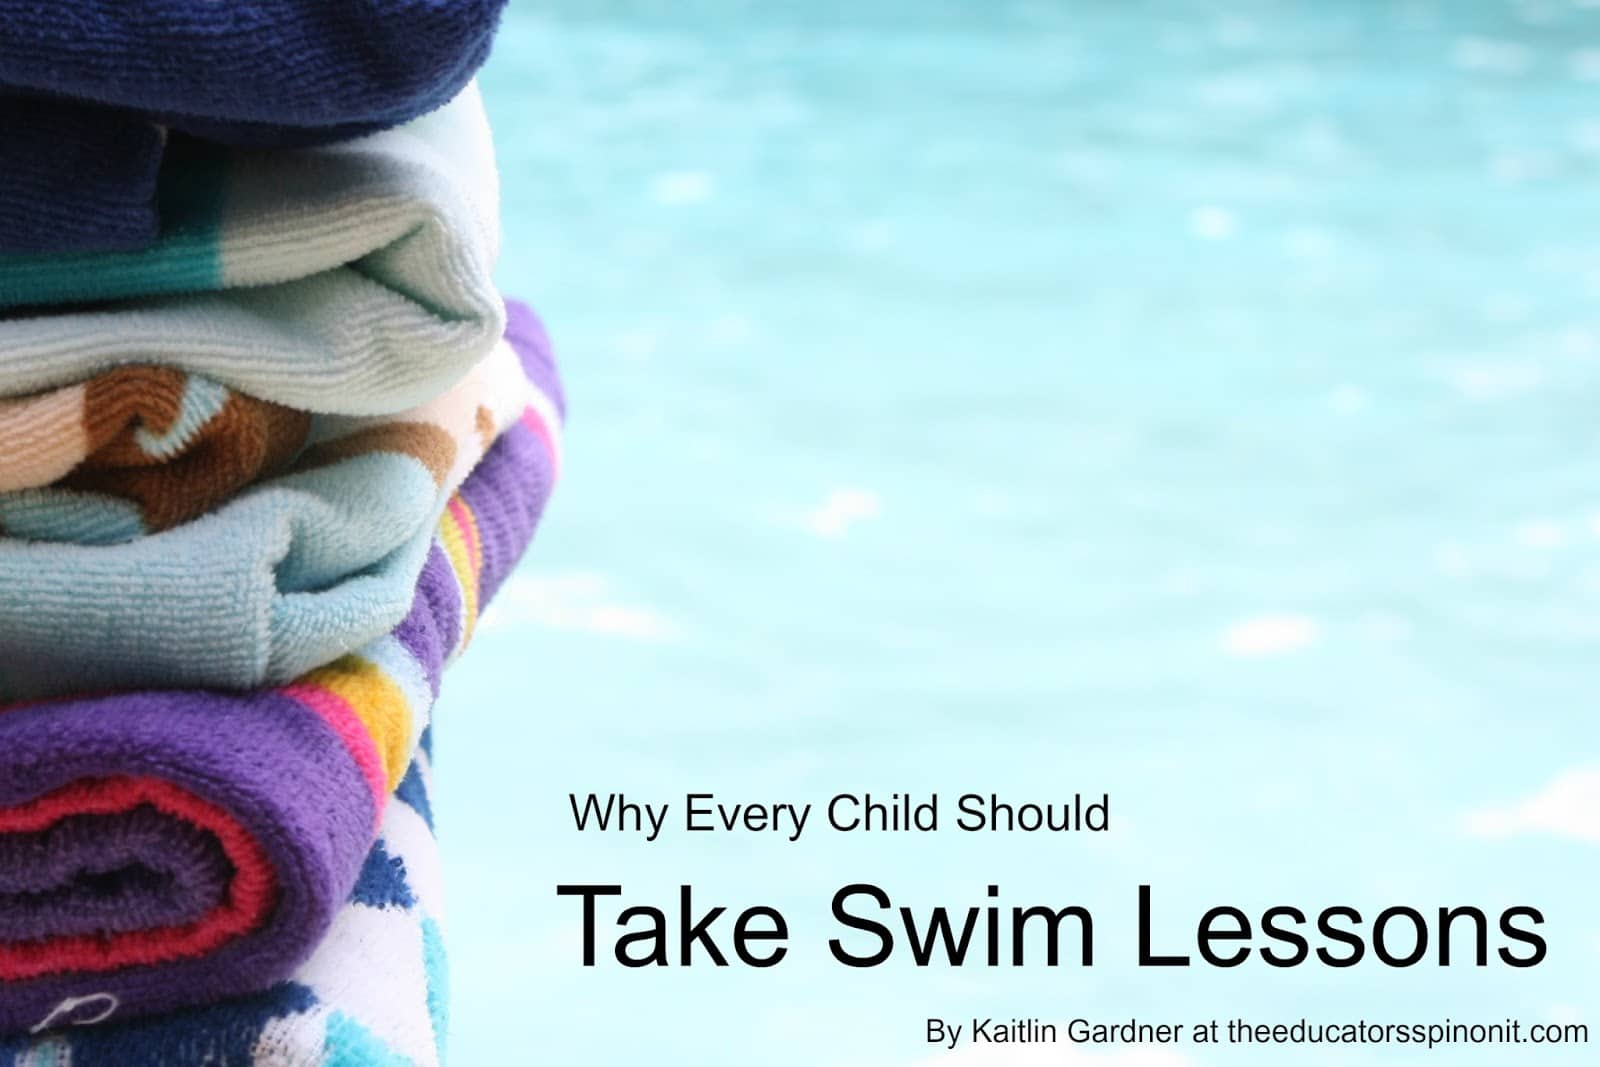 Why Every Child Should Take Swim Lessons